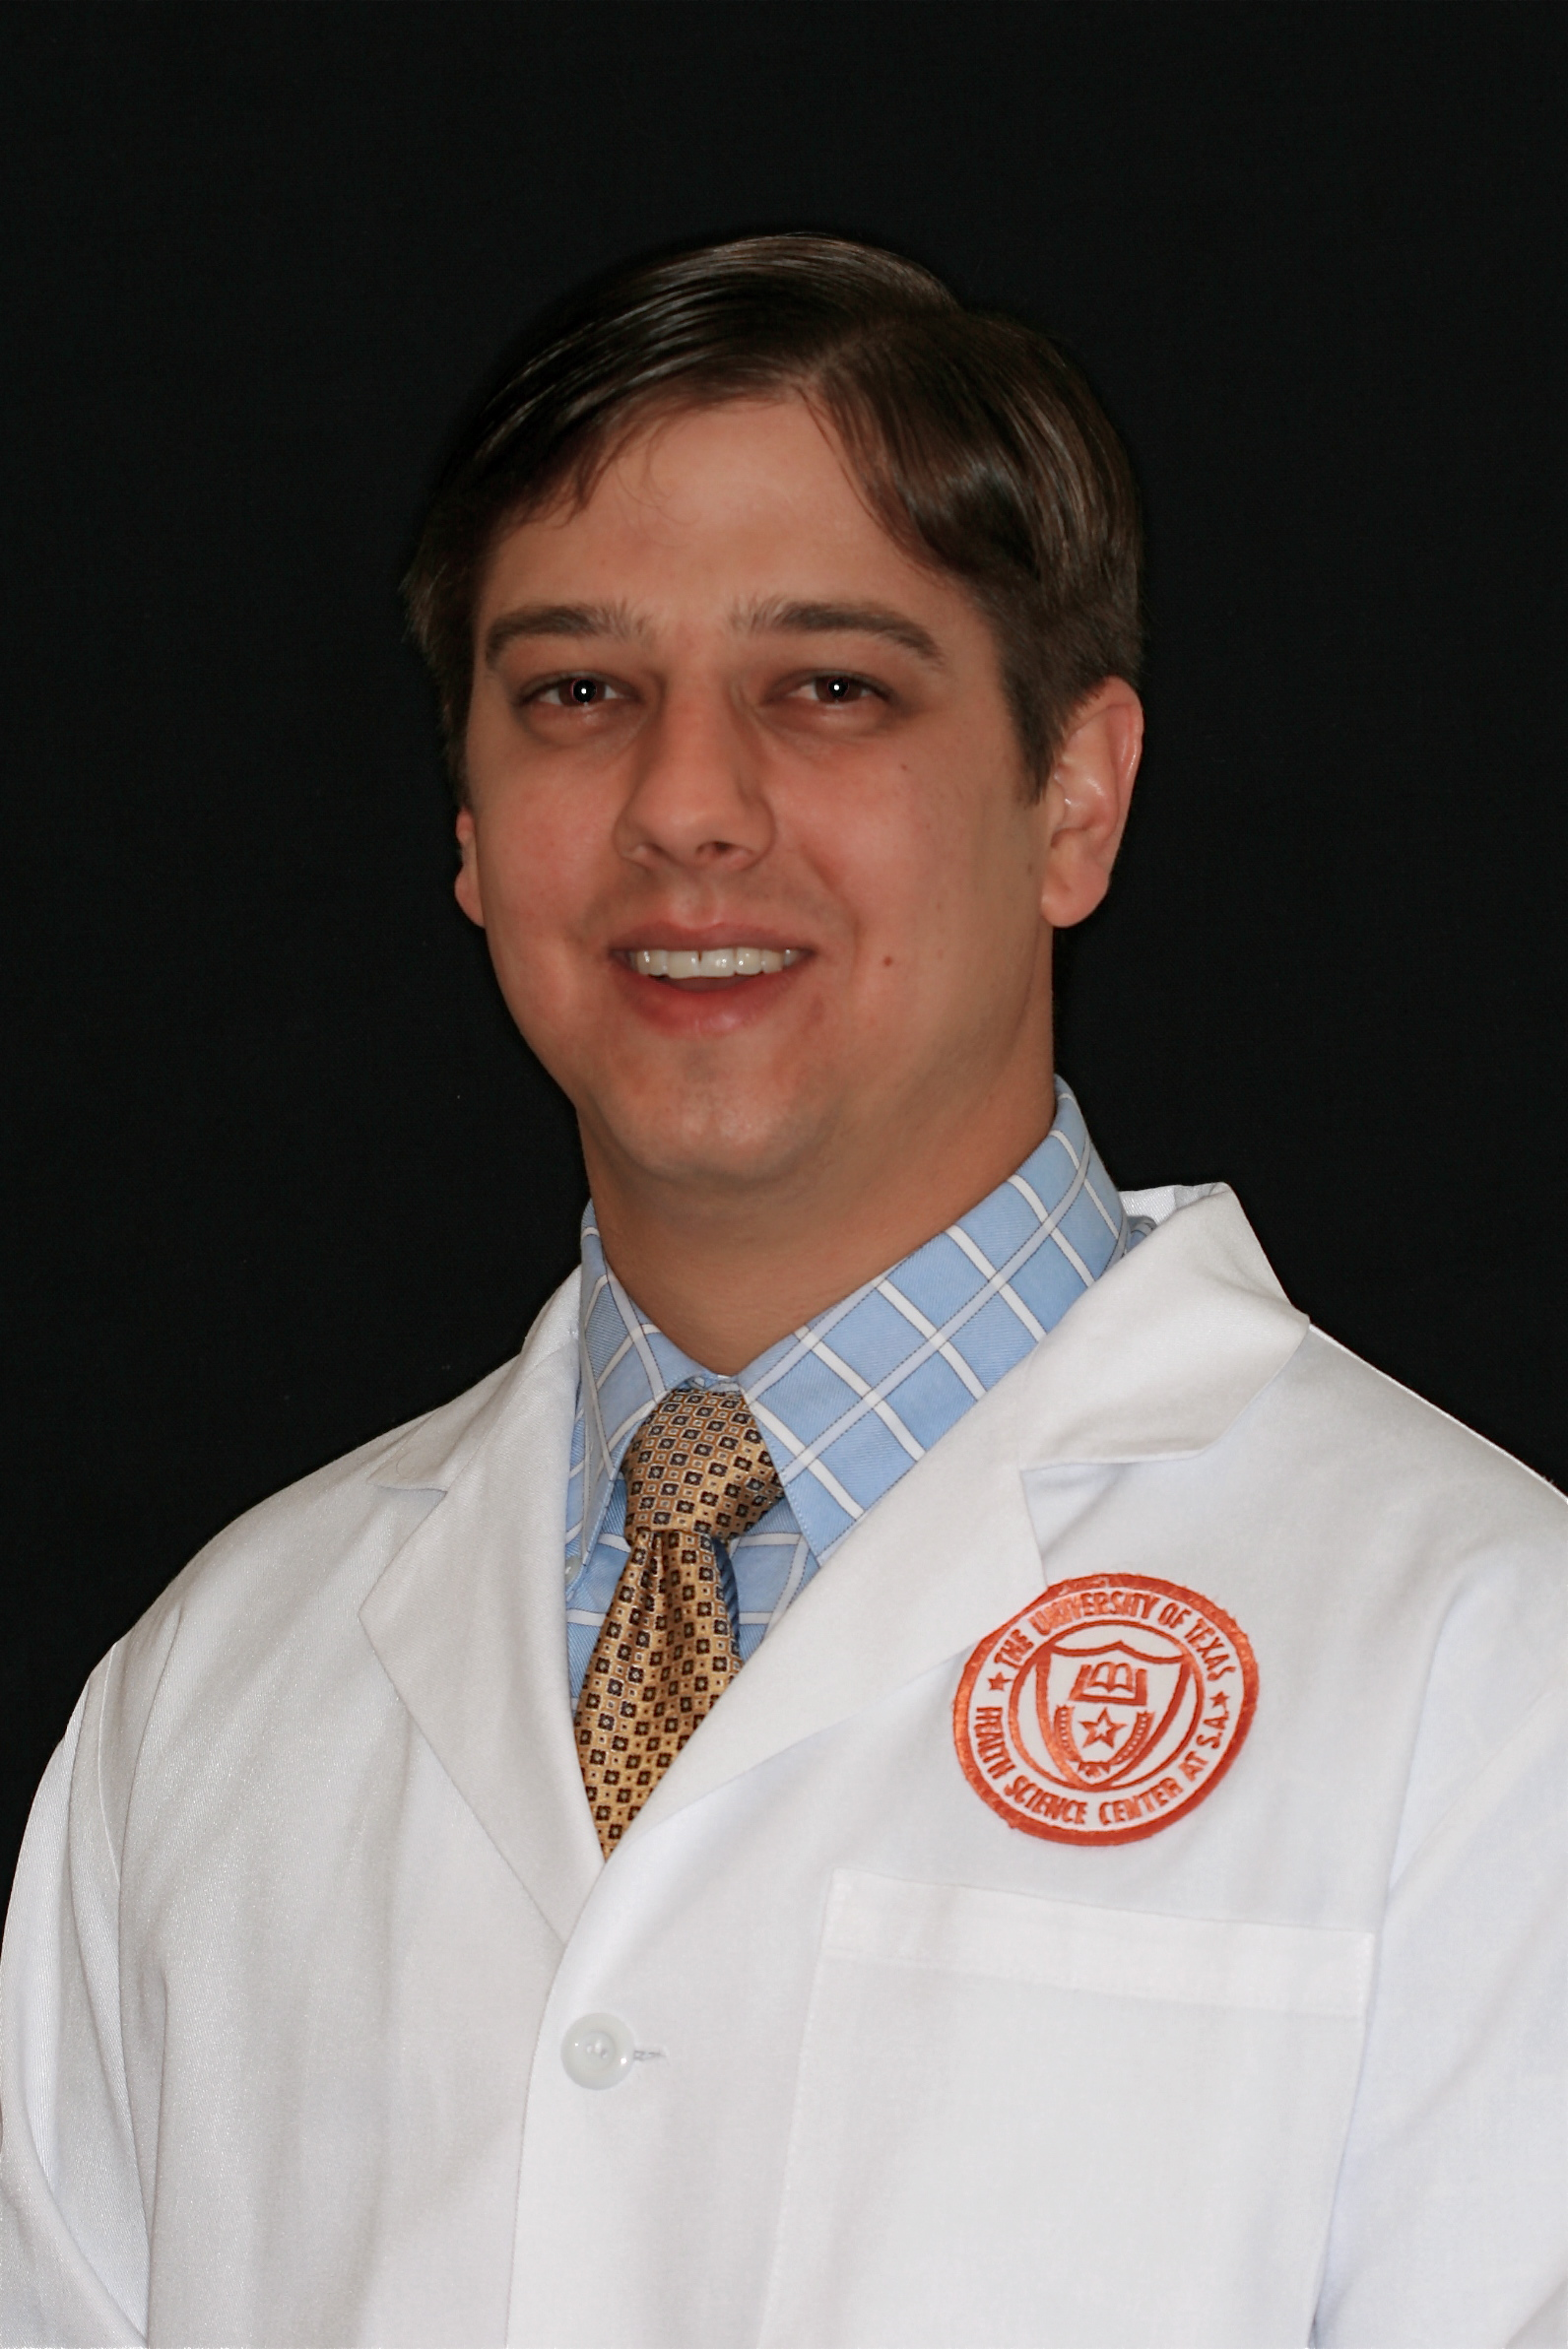 Dr. Will Stehling - Fredericksburg Texas General Dentist